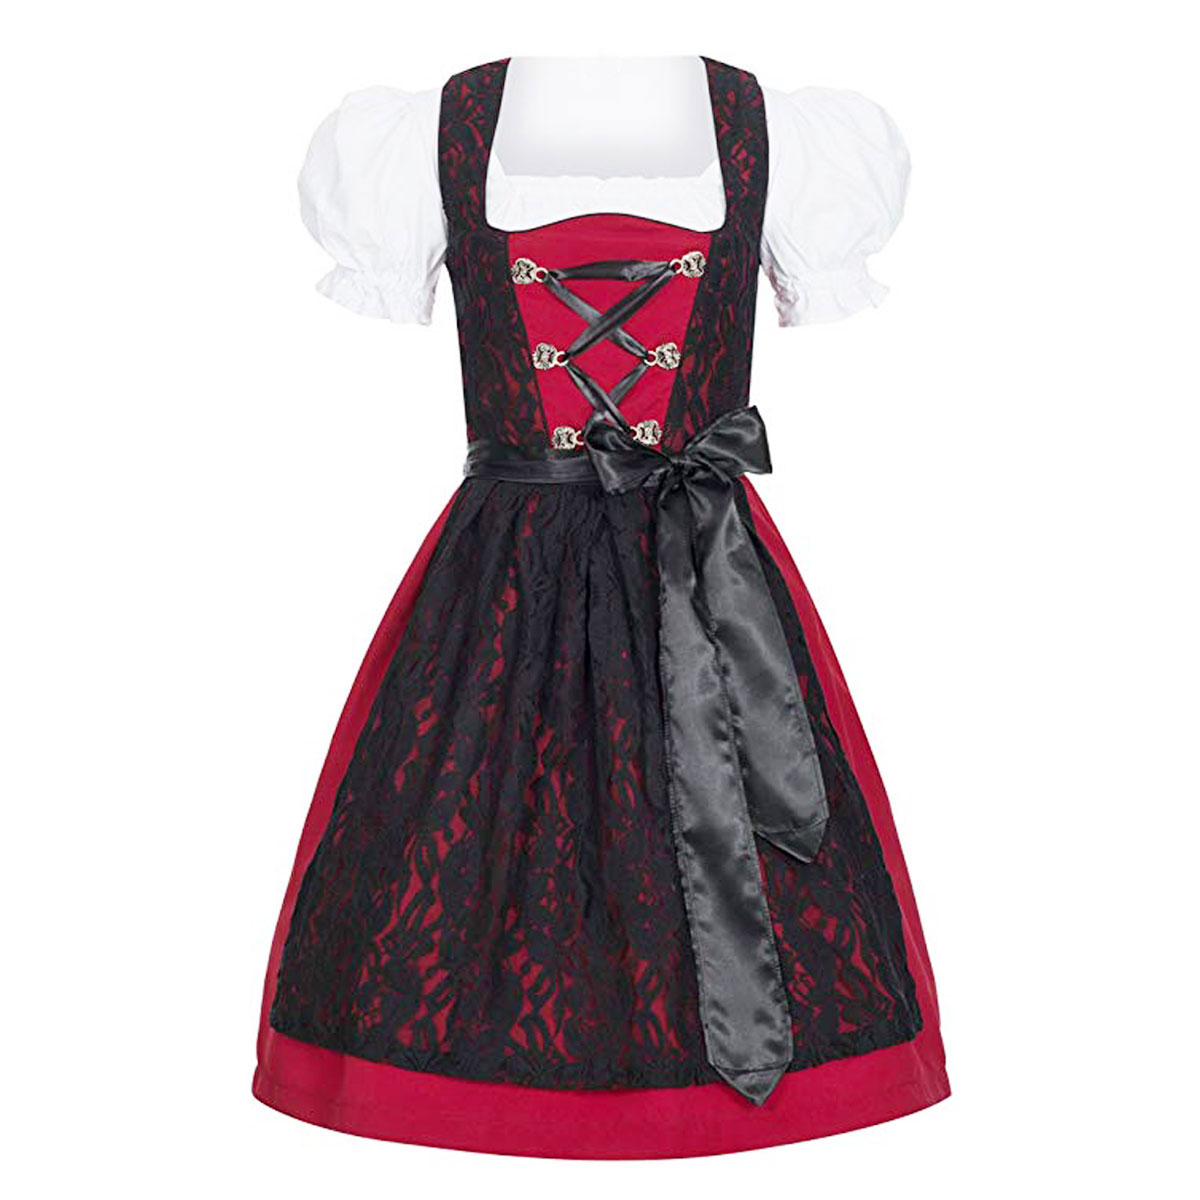 REDDISH DIRNDL WITH INTERLOCK BLACK NET